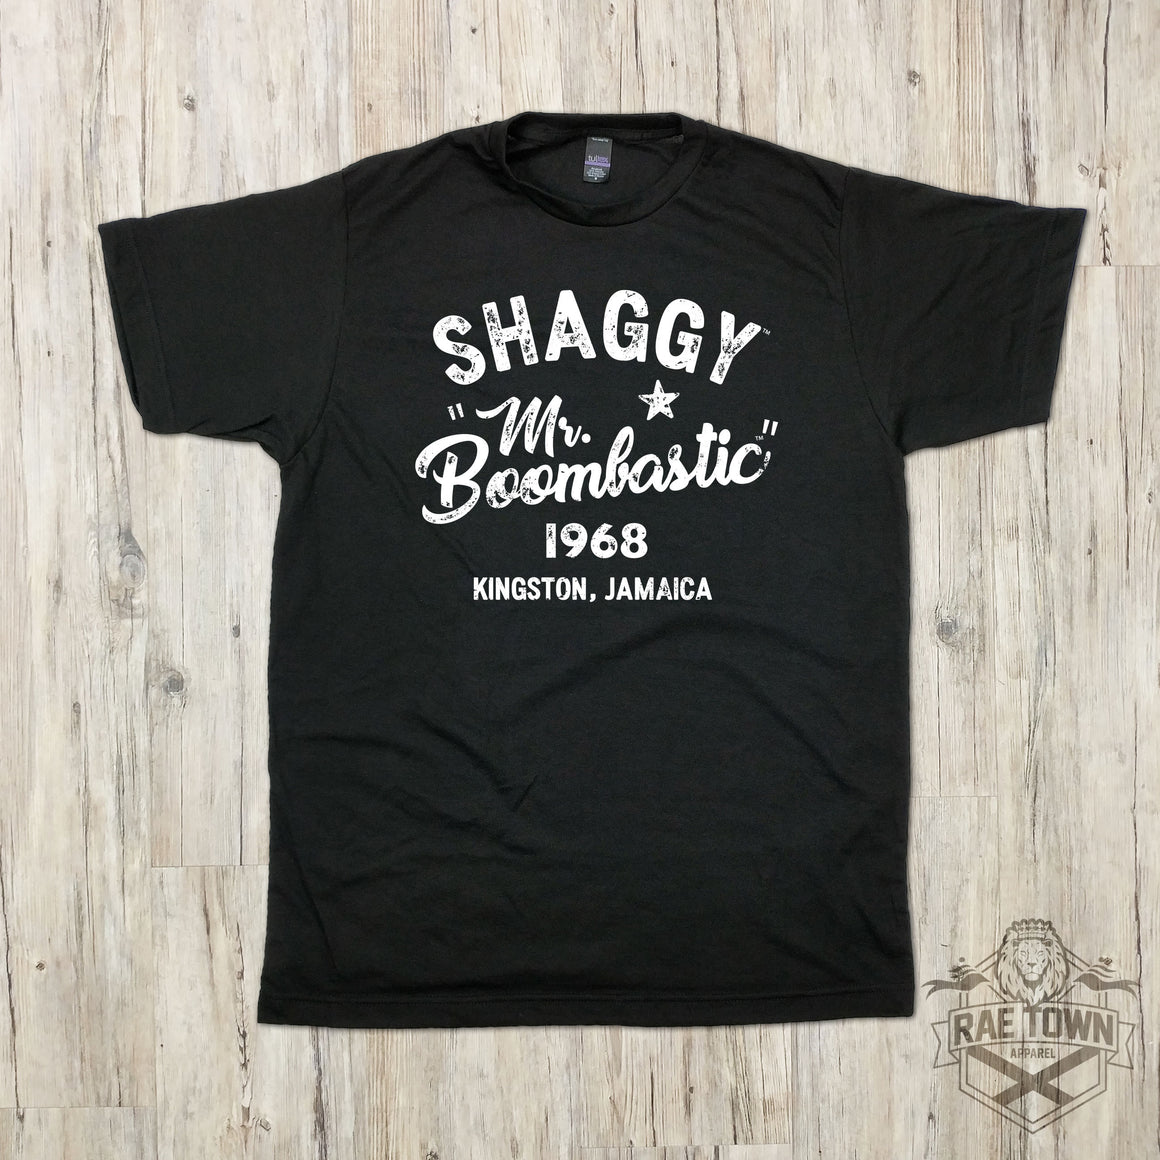 "Shaggy ""Mr. Boombastic"" 1968"